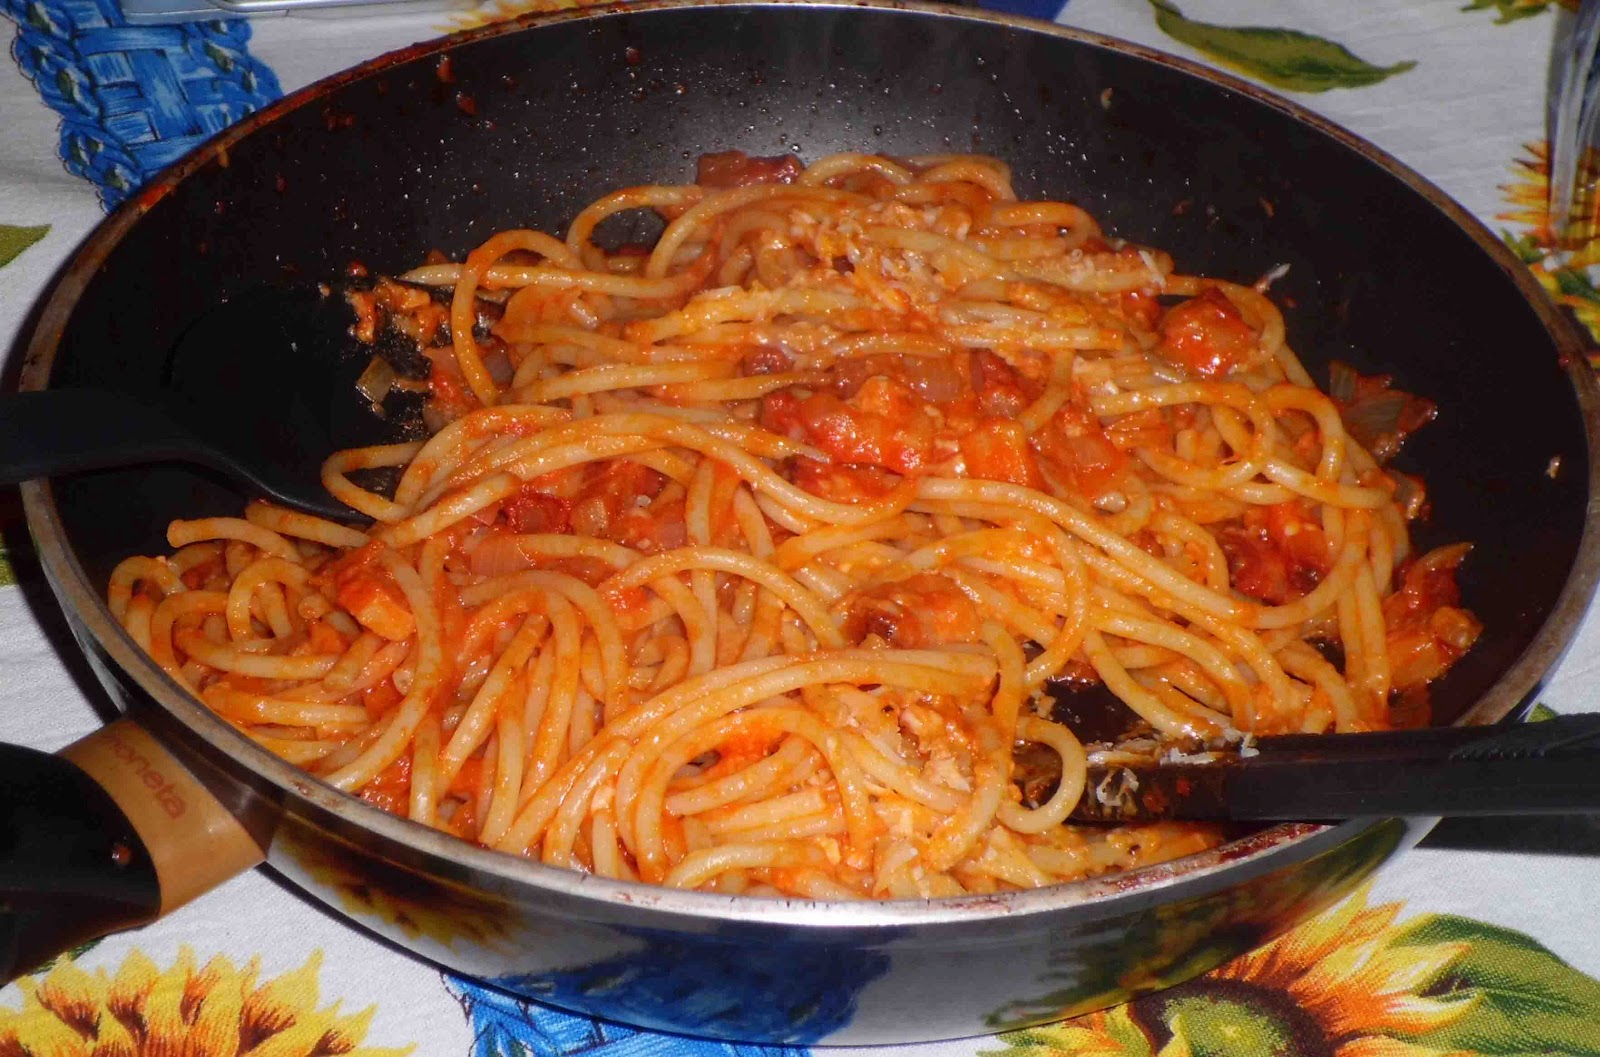 Pandora's Cooking: BUCATINI ALL'AMATRICIANA/AMATRICIANA BUCATINI